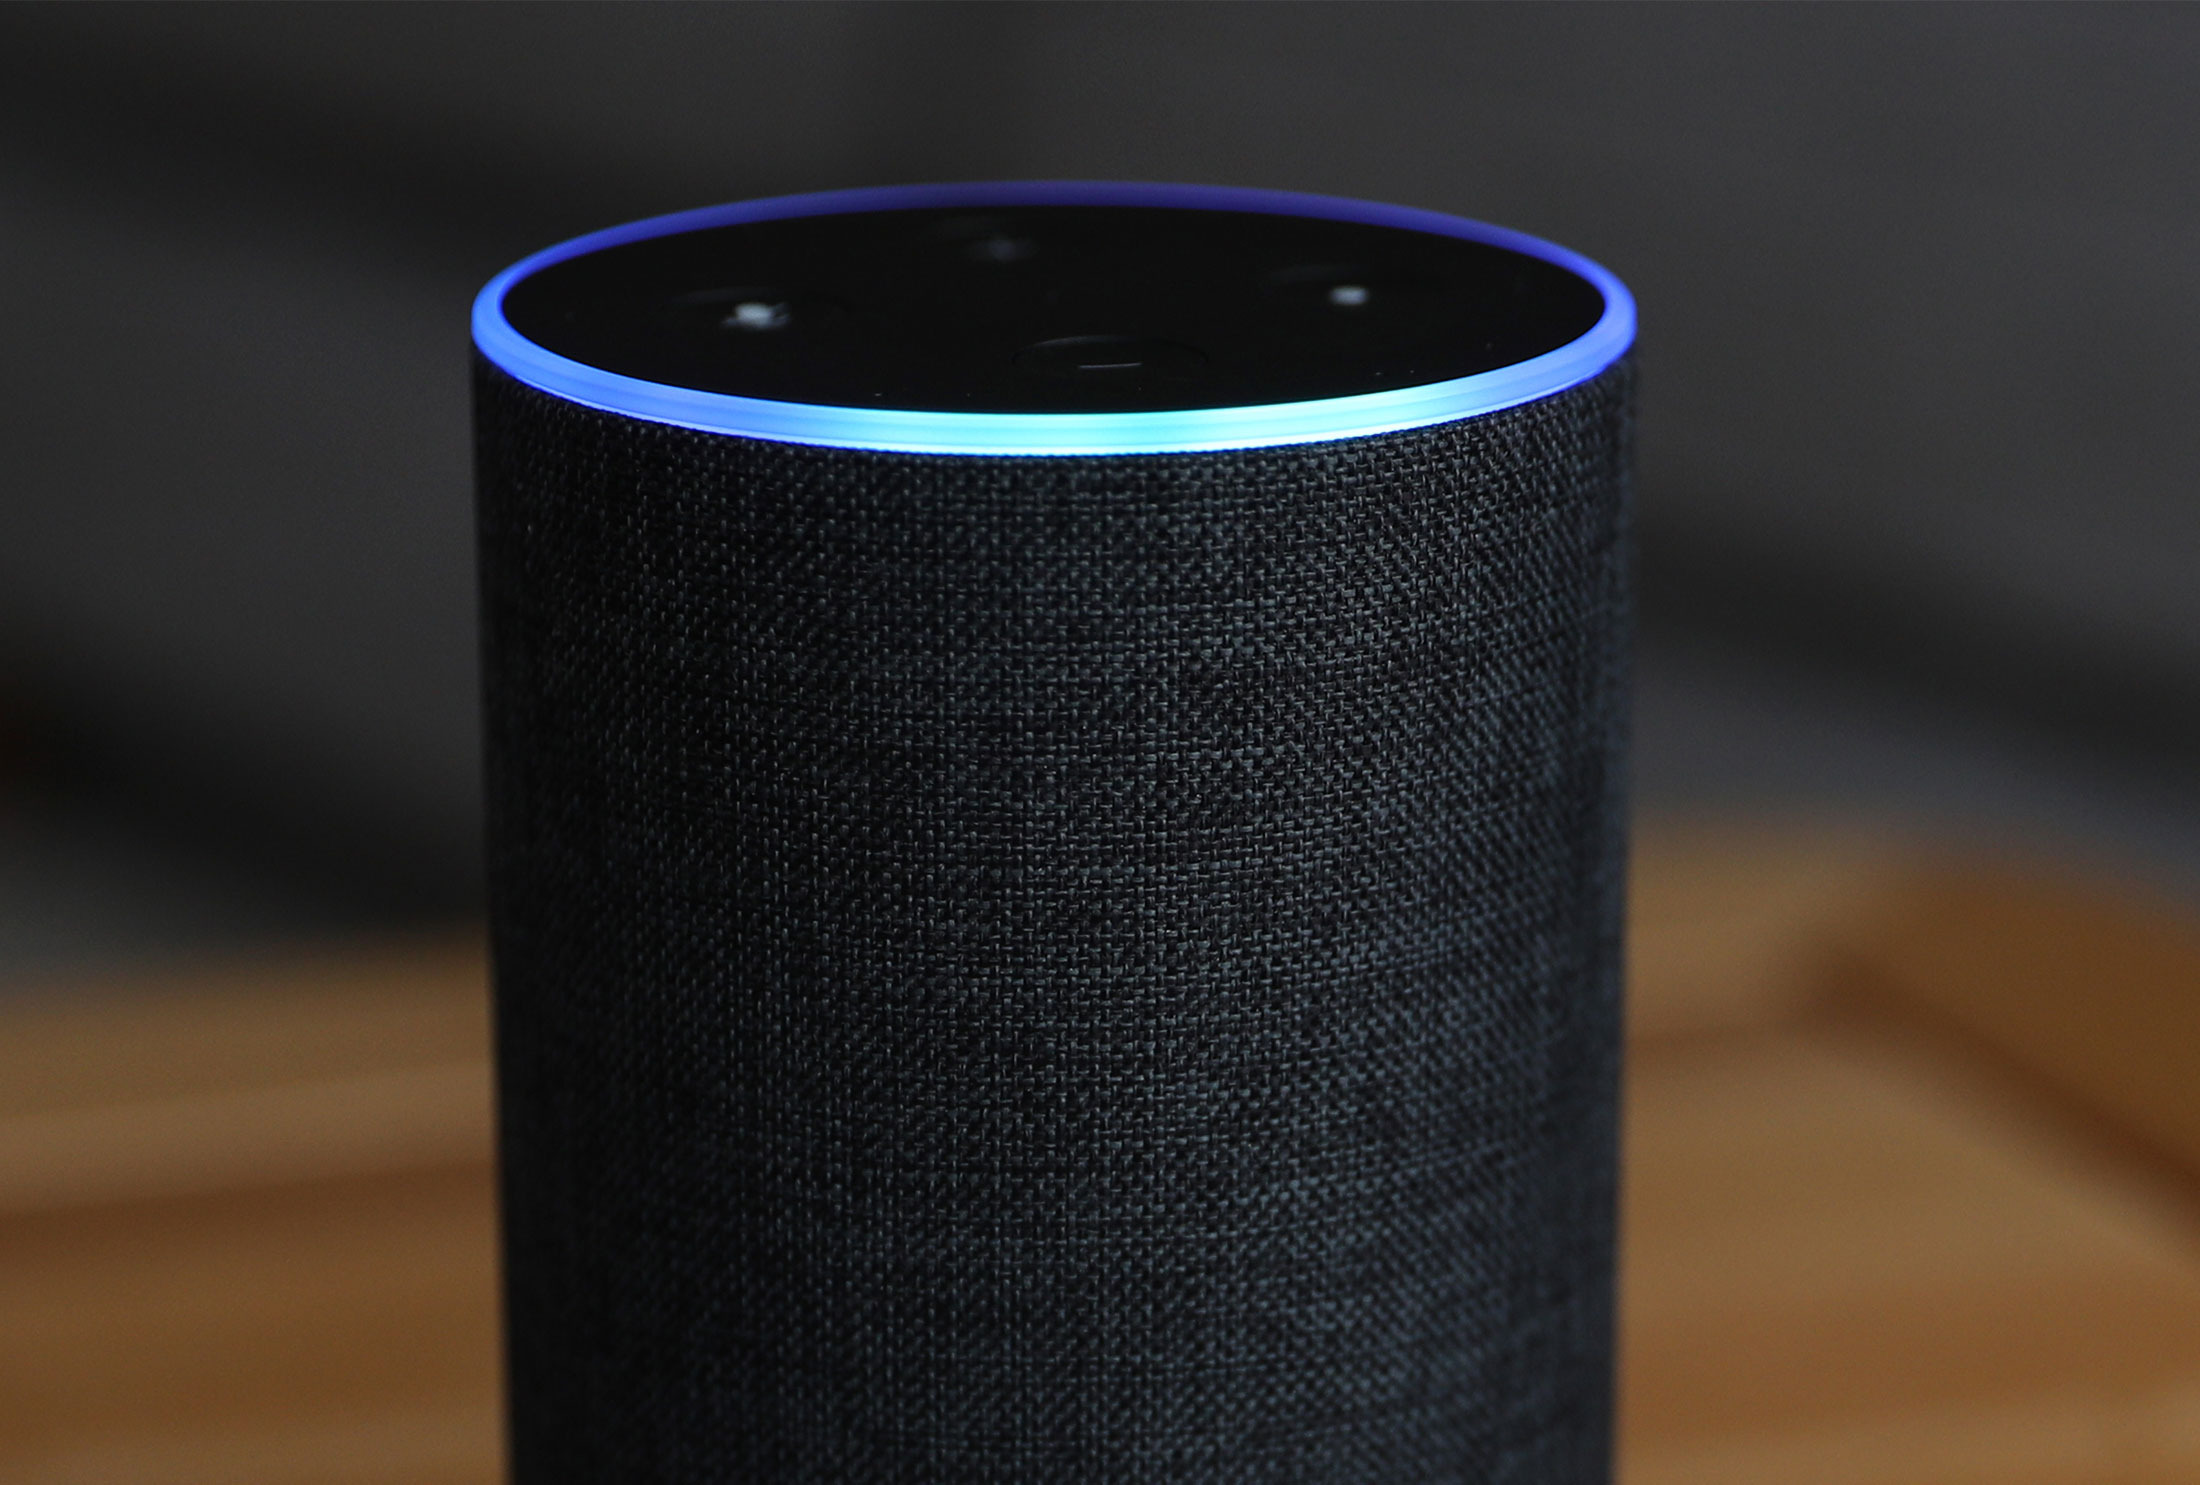 Amazon Gives Option to Disable Human Review on Alexa - Bloomberg